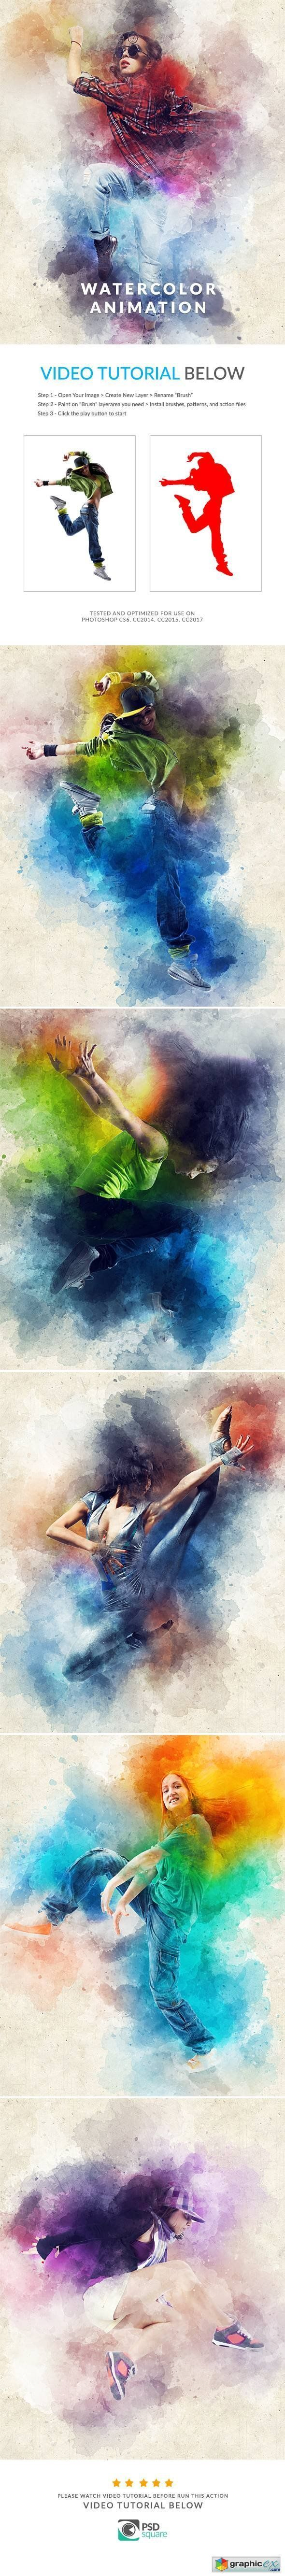 watercolor artist photoshop action free download